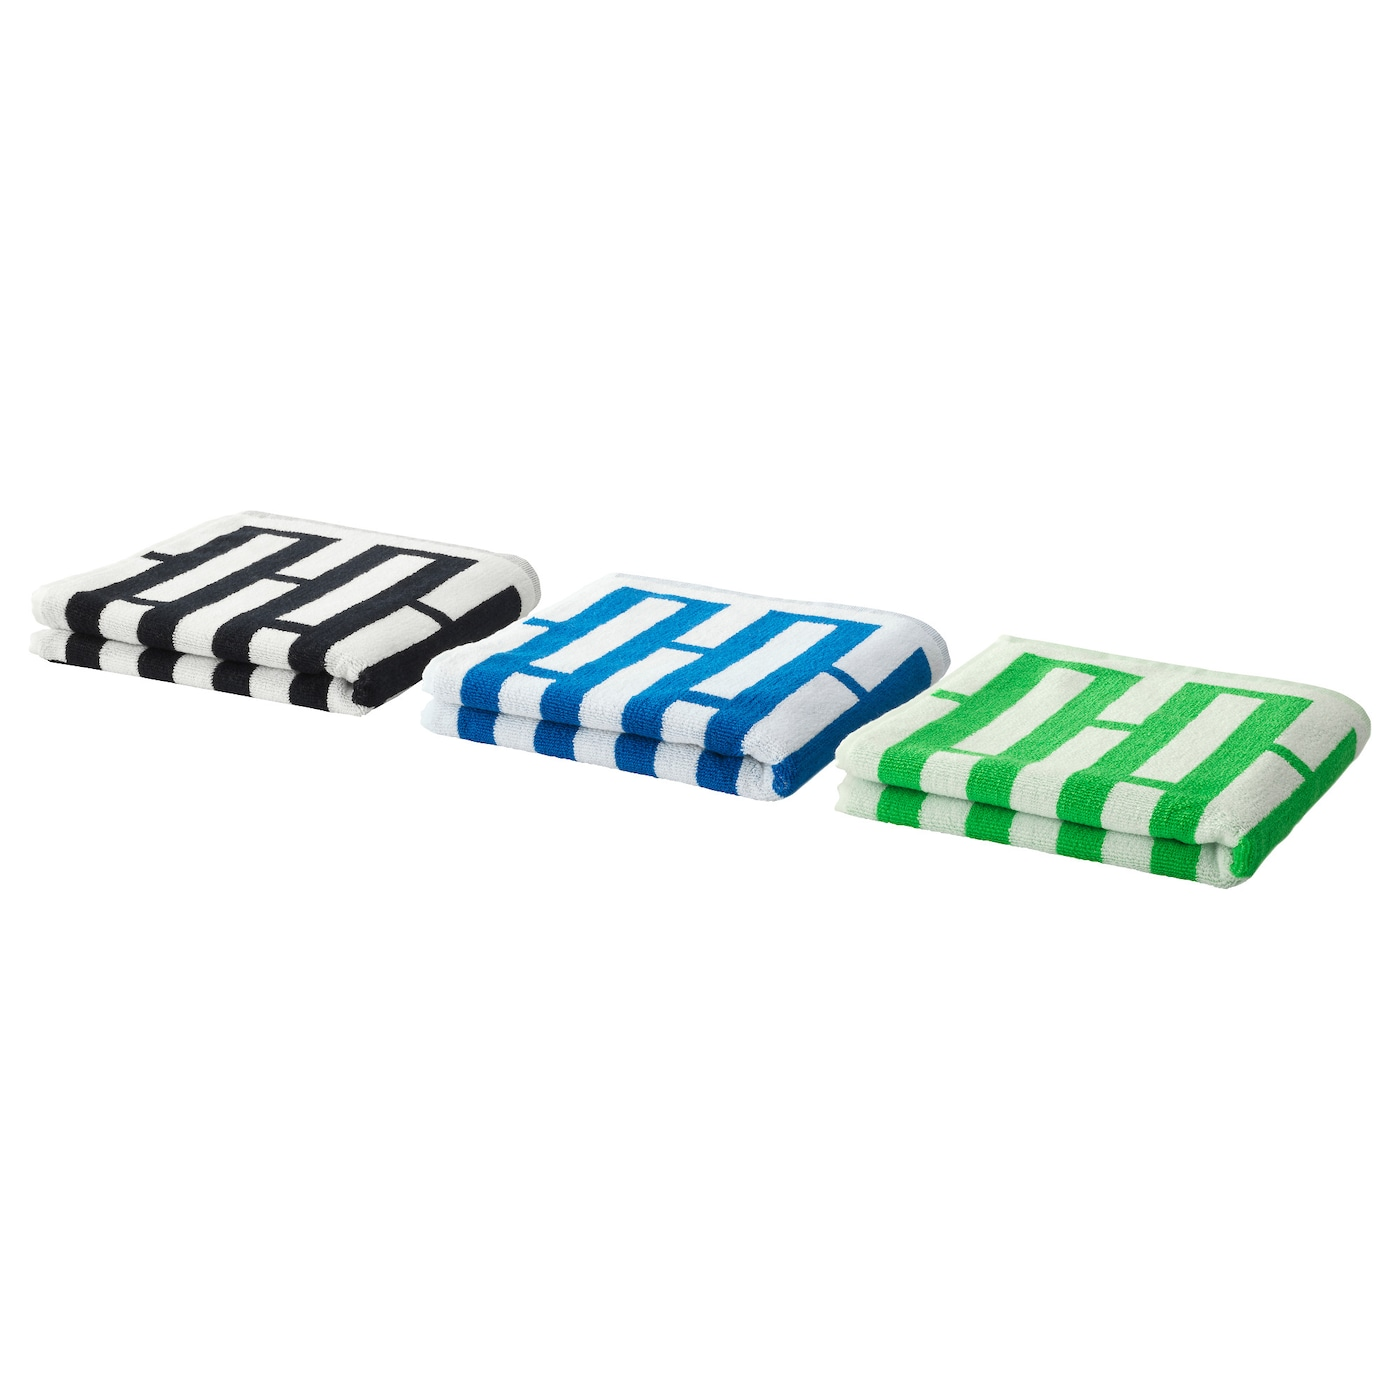 IKEA AVSIKTLIG hand towel The long, fine fibres of combed cotton create a soft and durable towel.